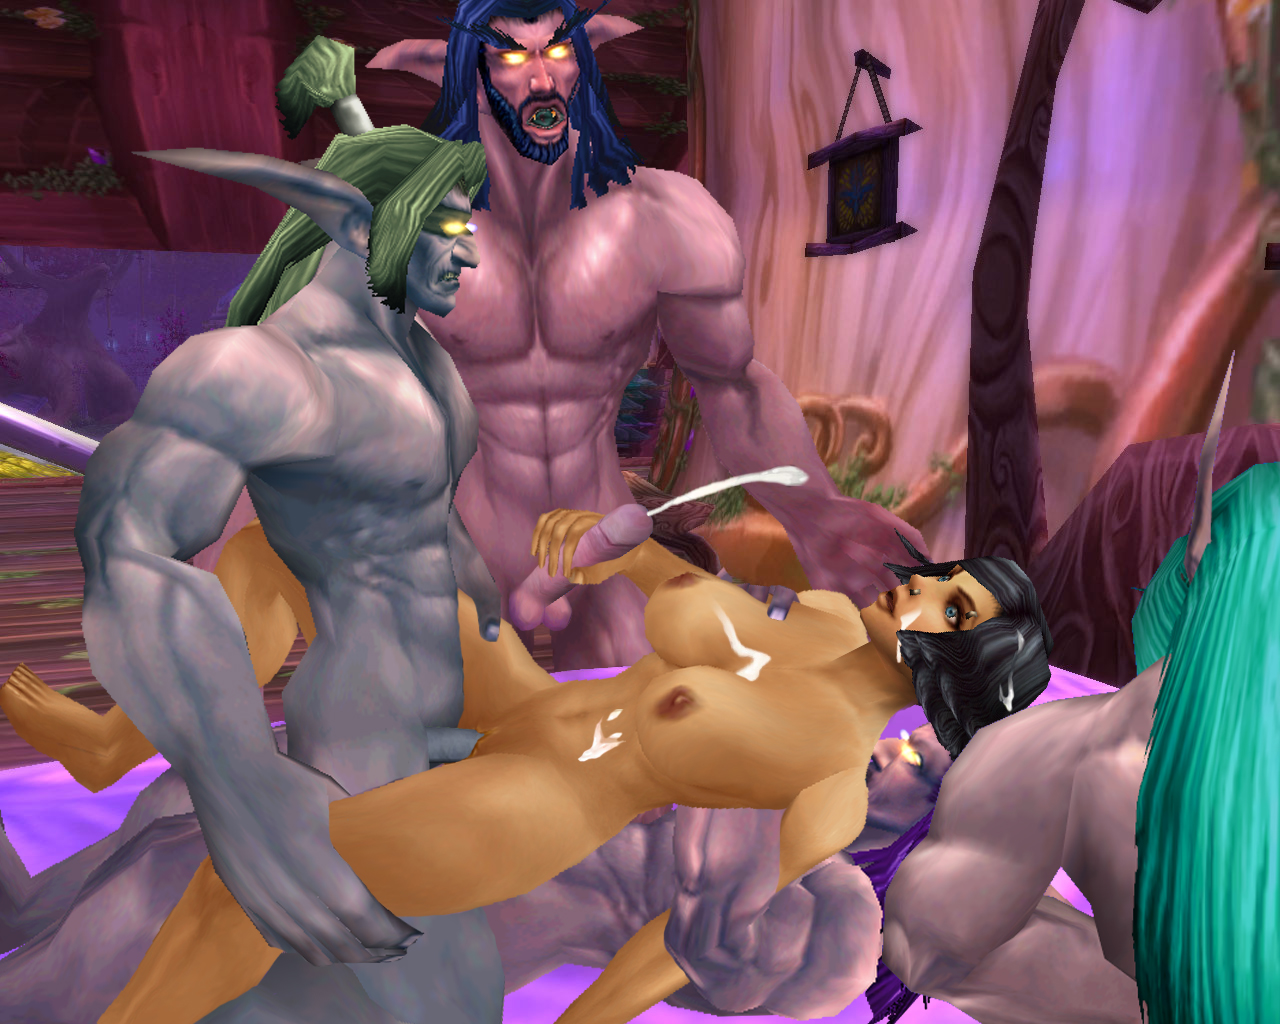 World of warcraft nude sex patch naked images